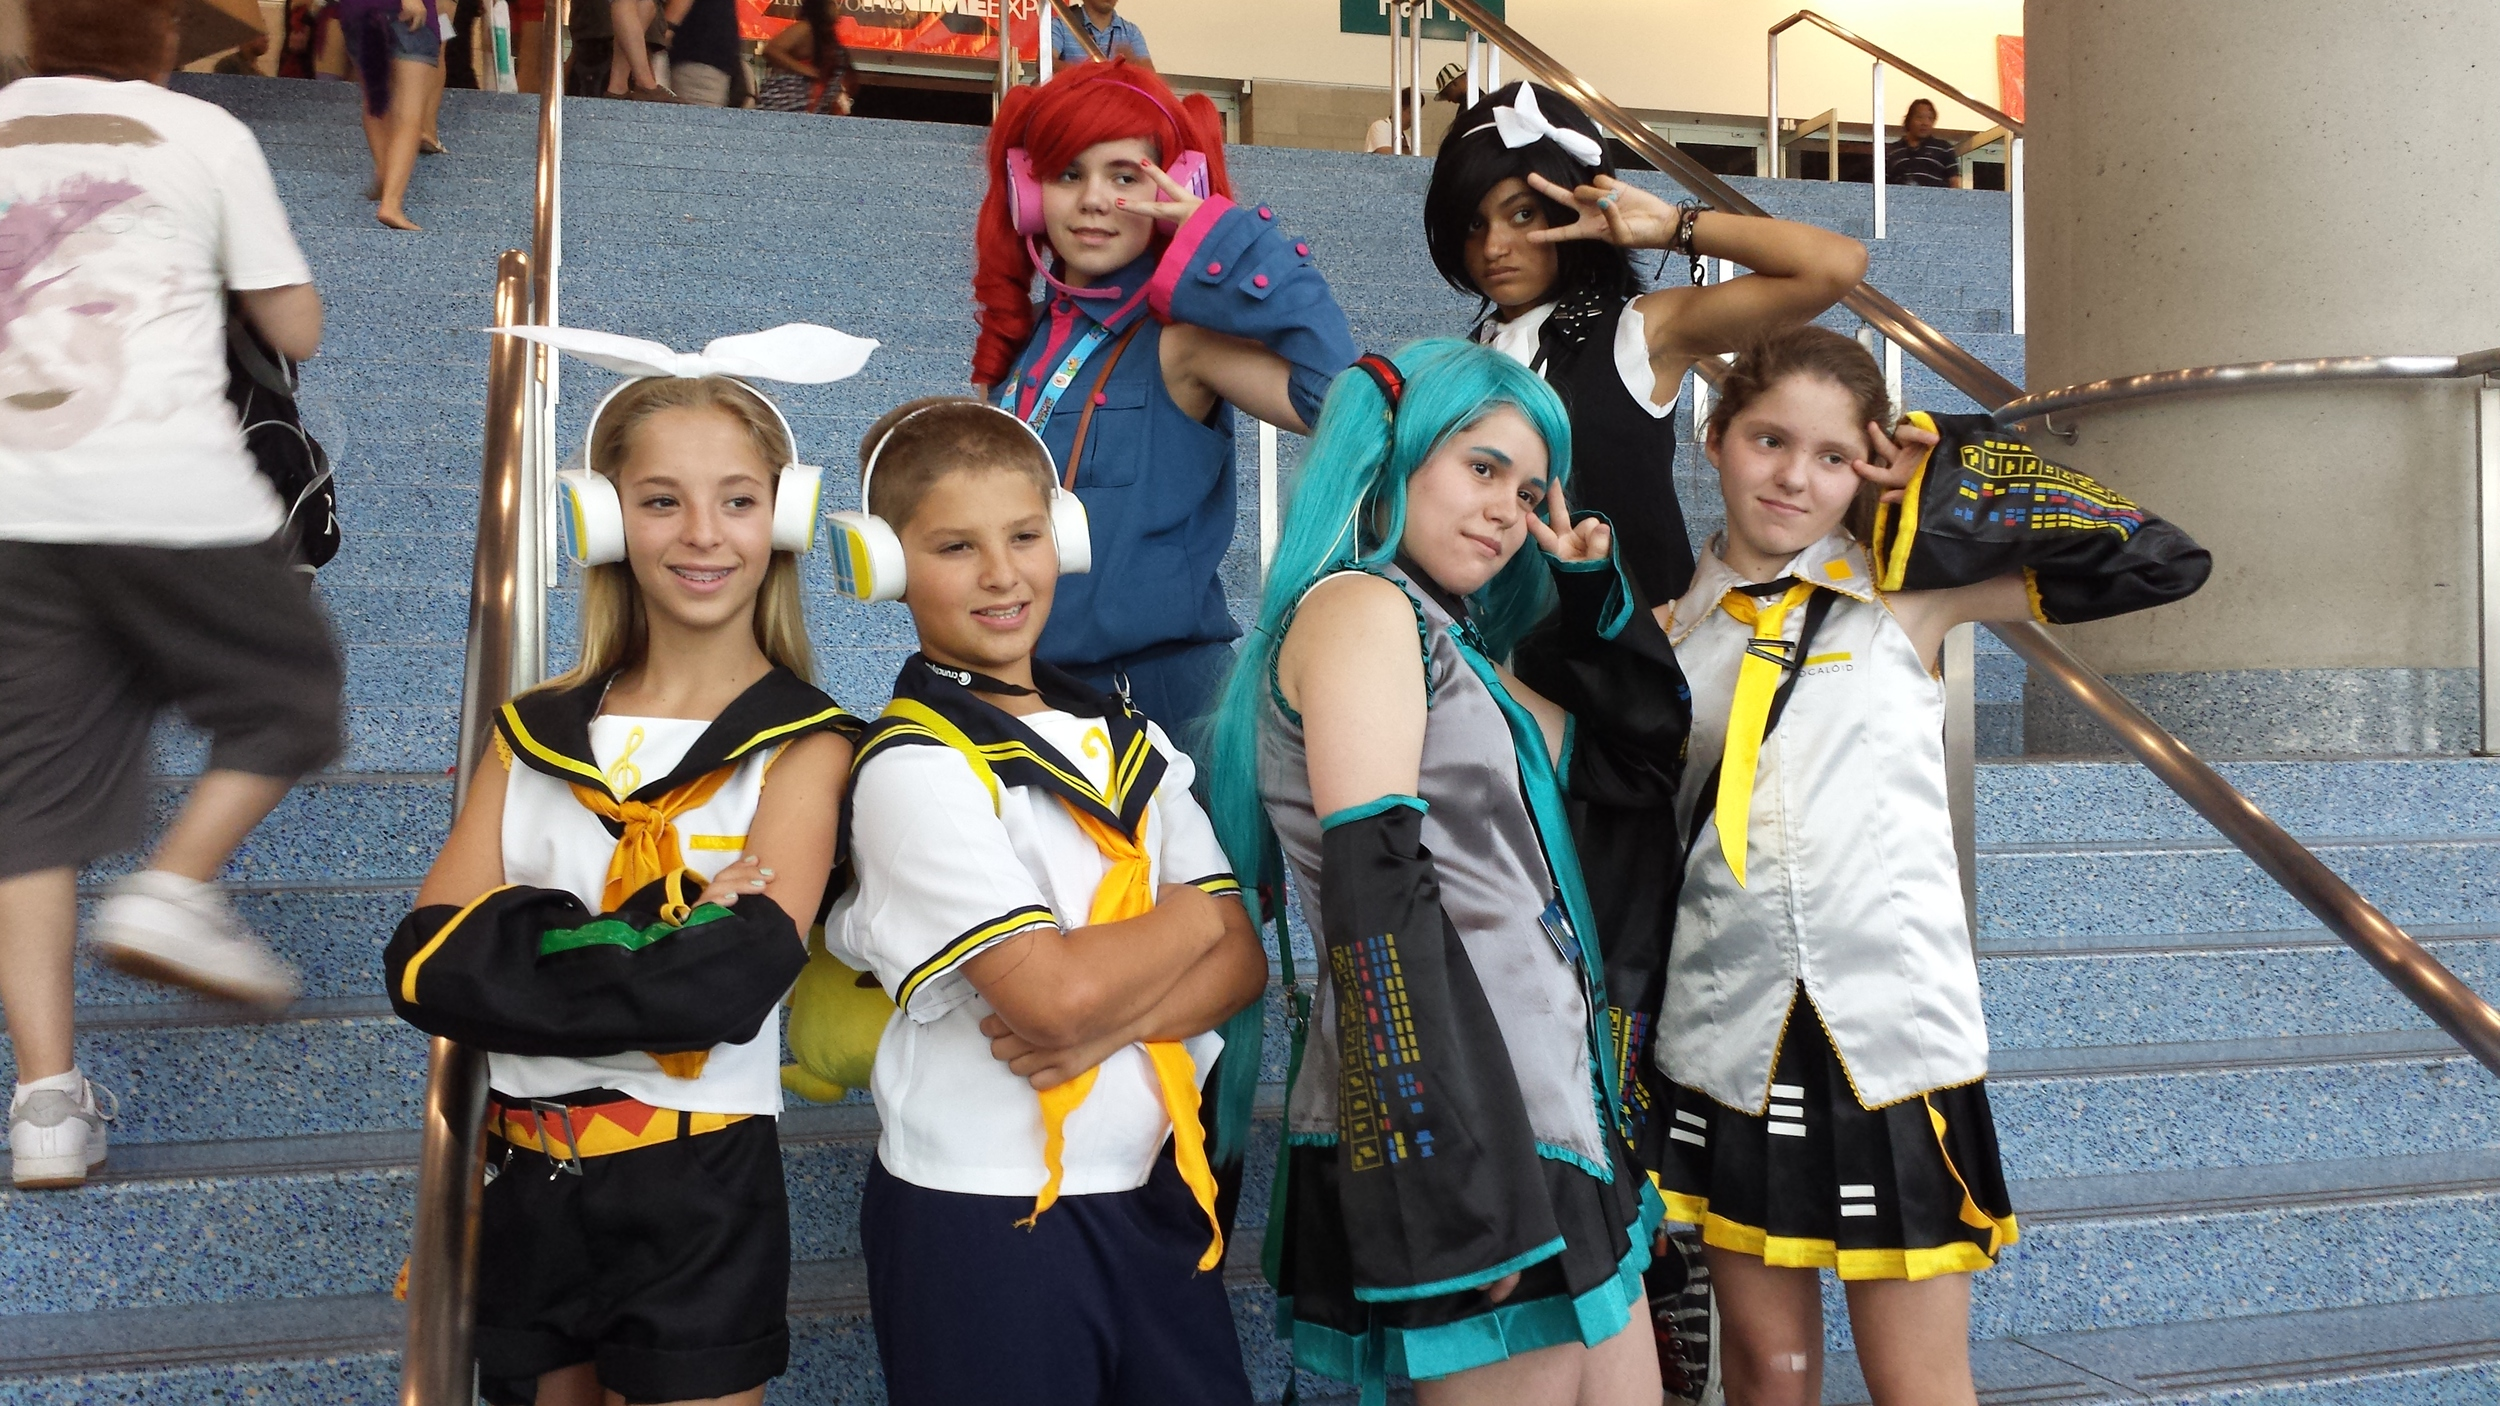 AnimeExpo 2013 - Ready for the show